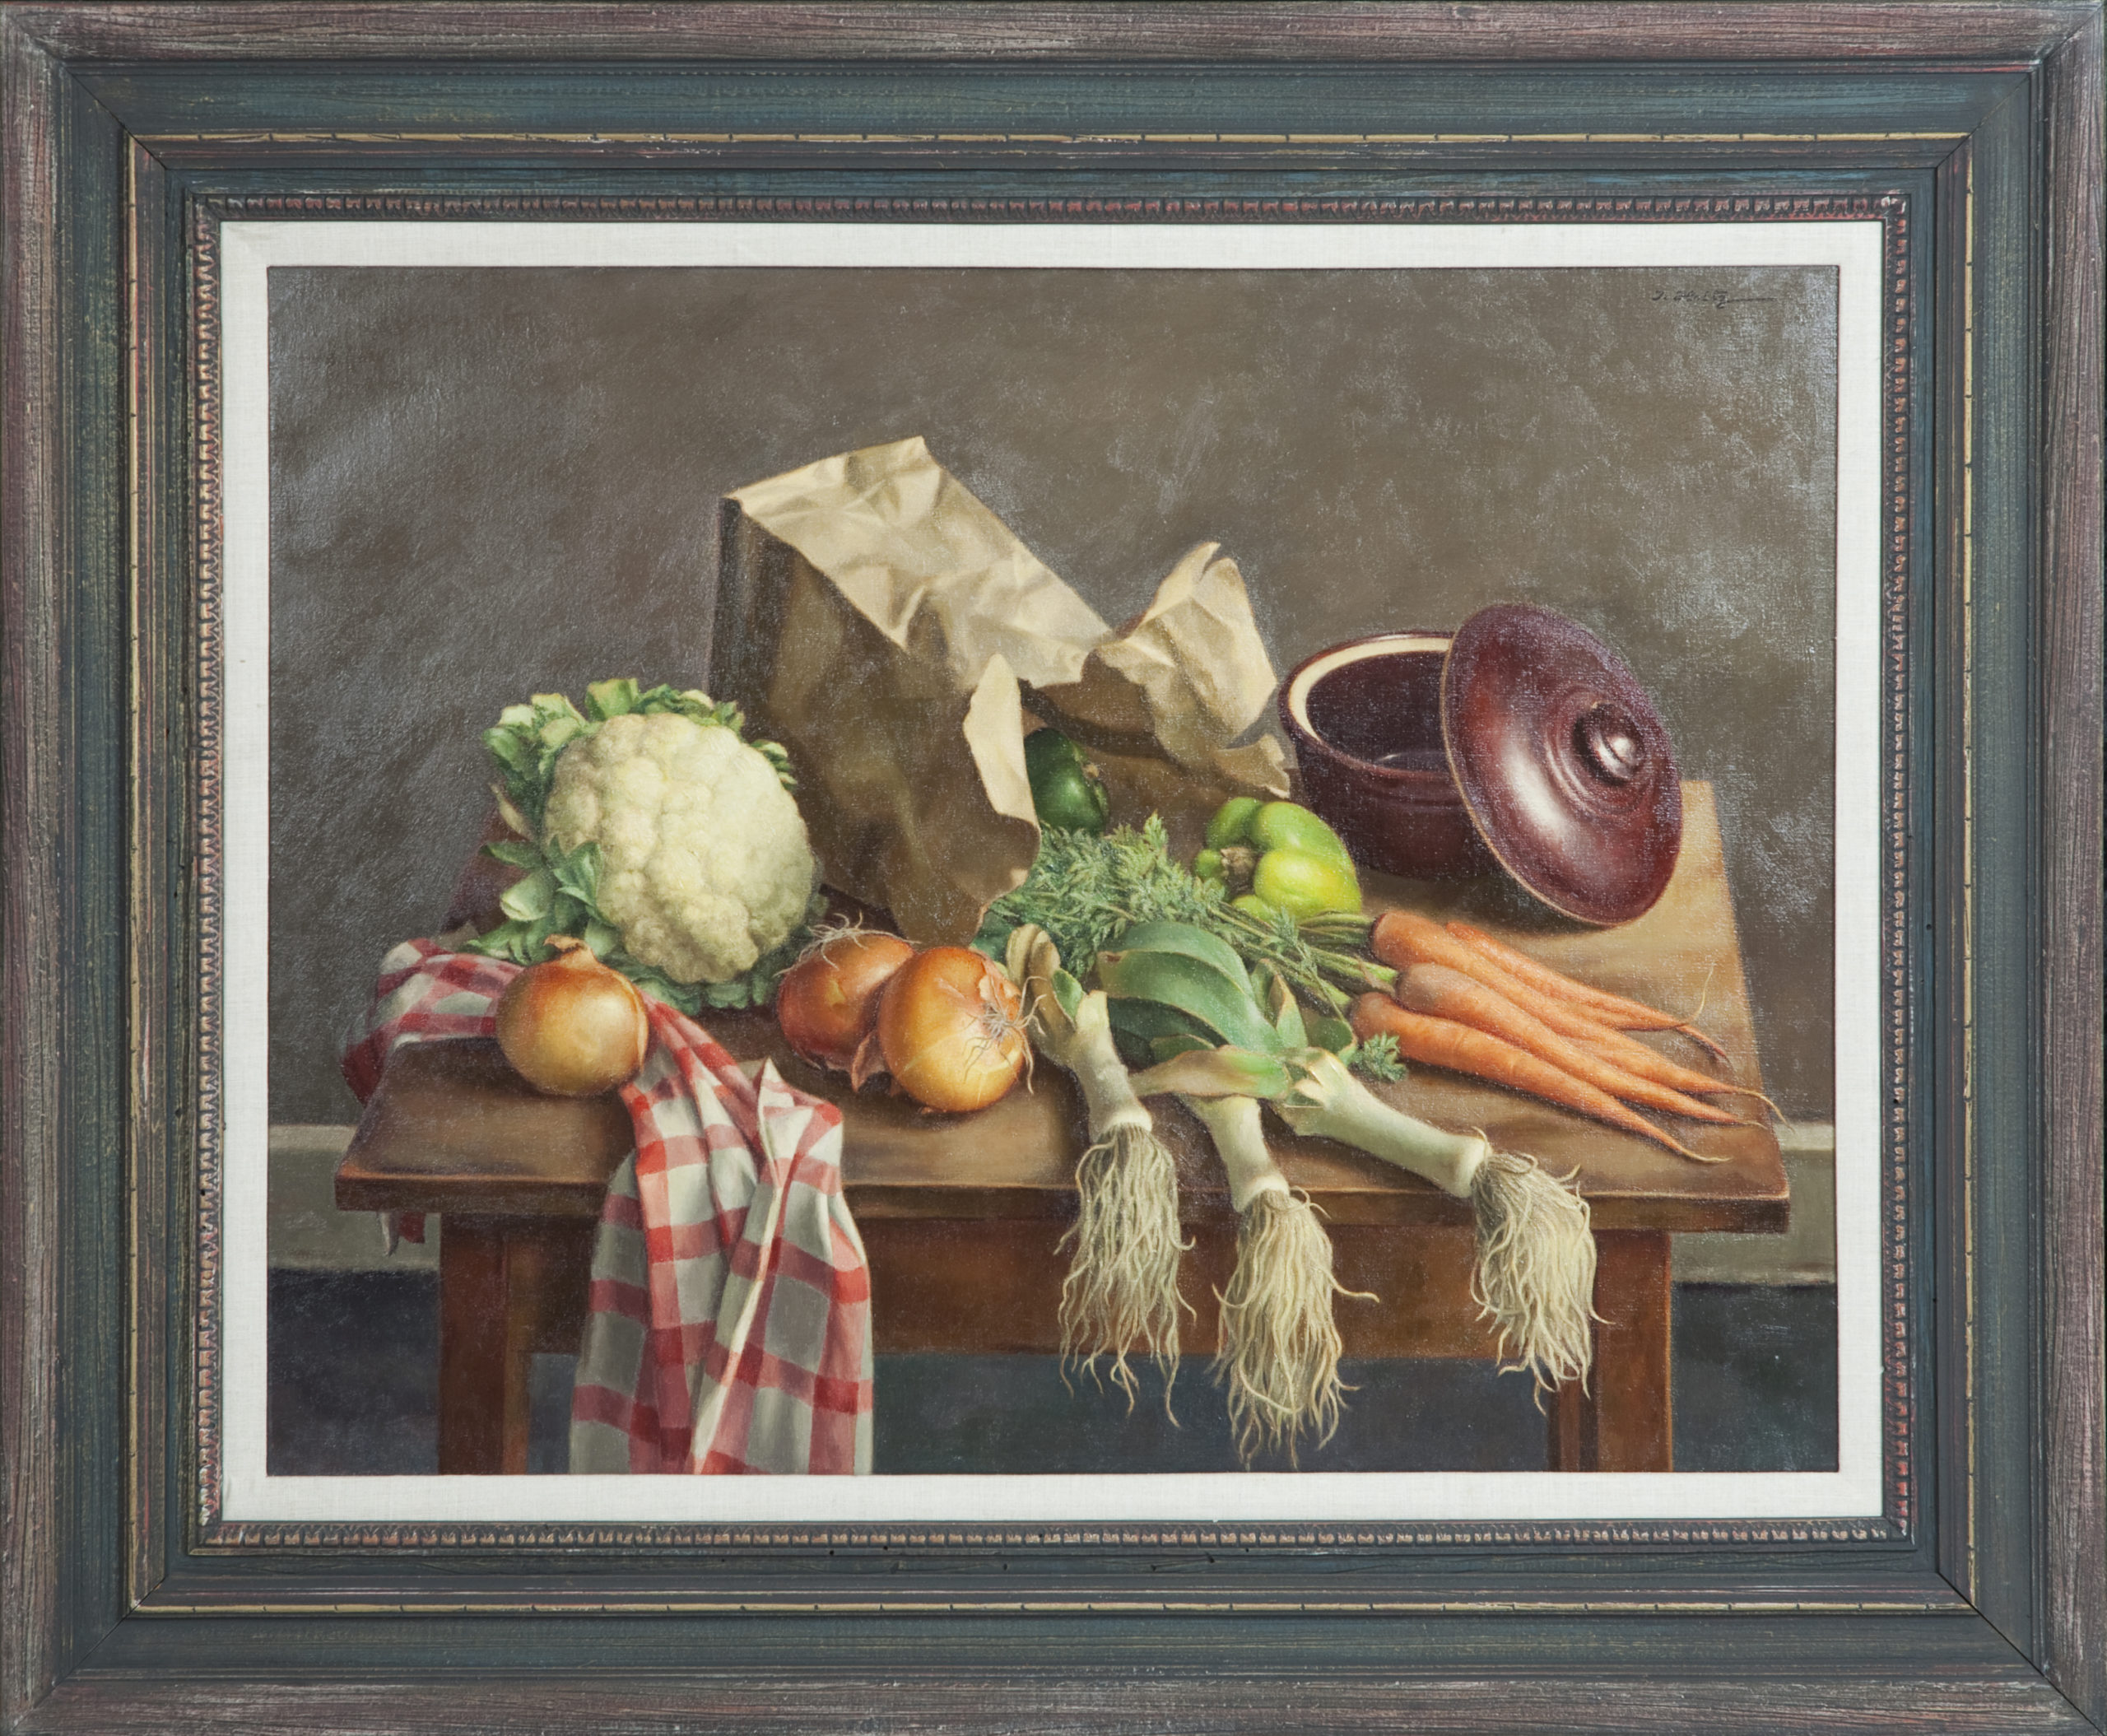 188 Vegetables 1953 - Oil on Canvas - 26 x 34 - Frame: 44.5 x 36.75 x 2.75